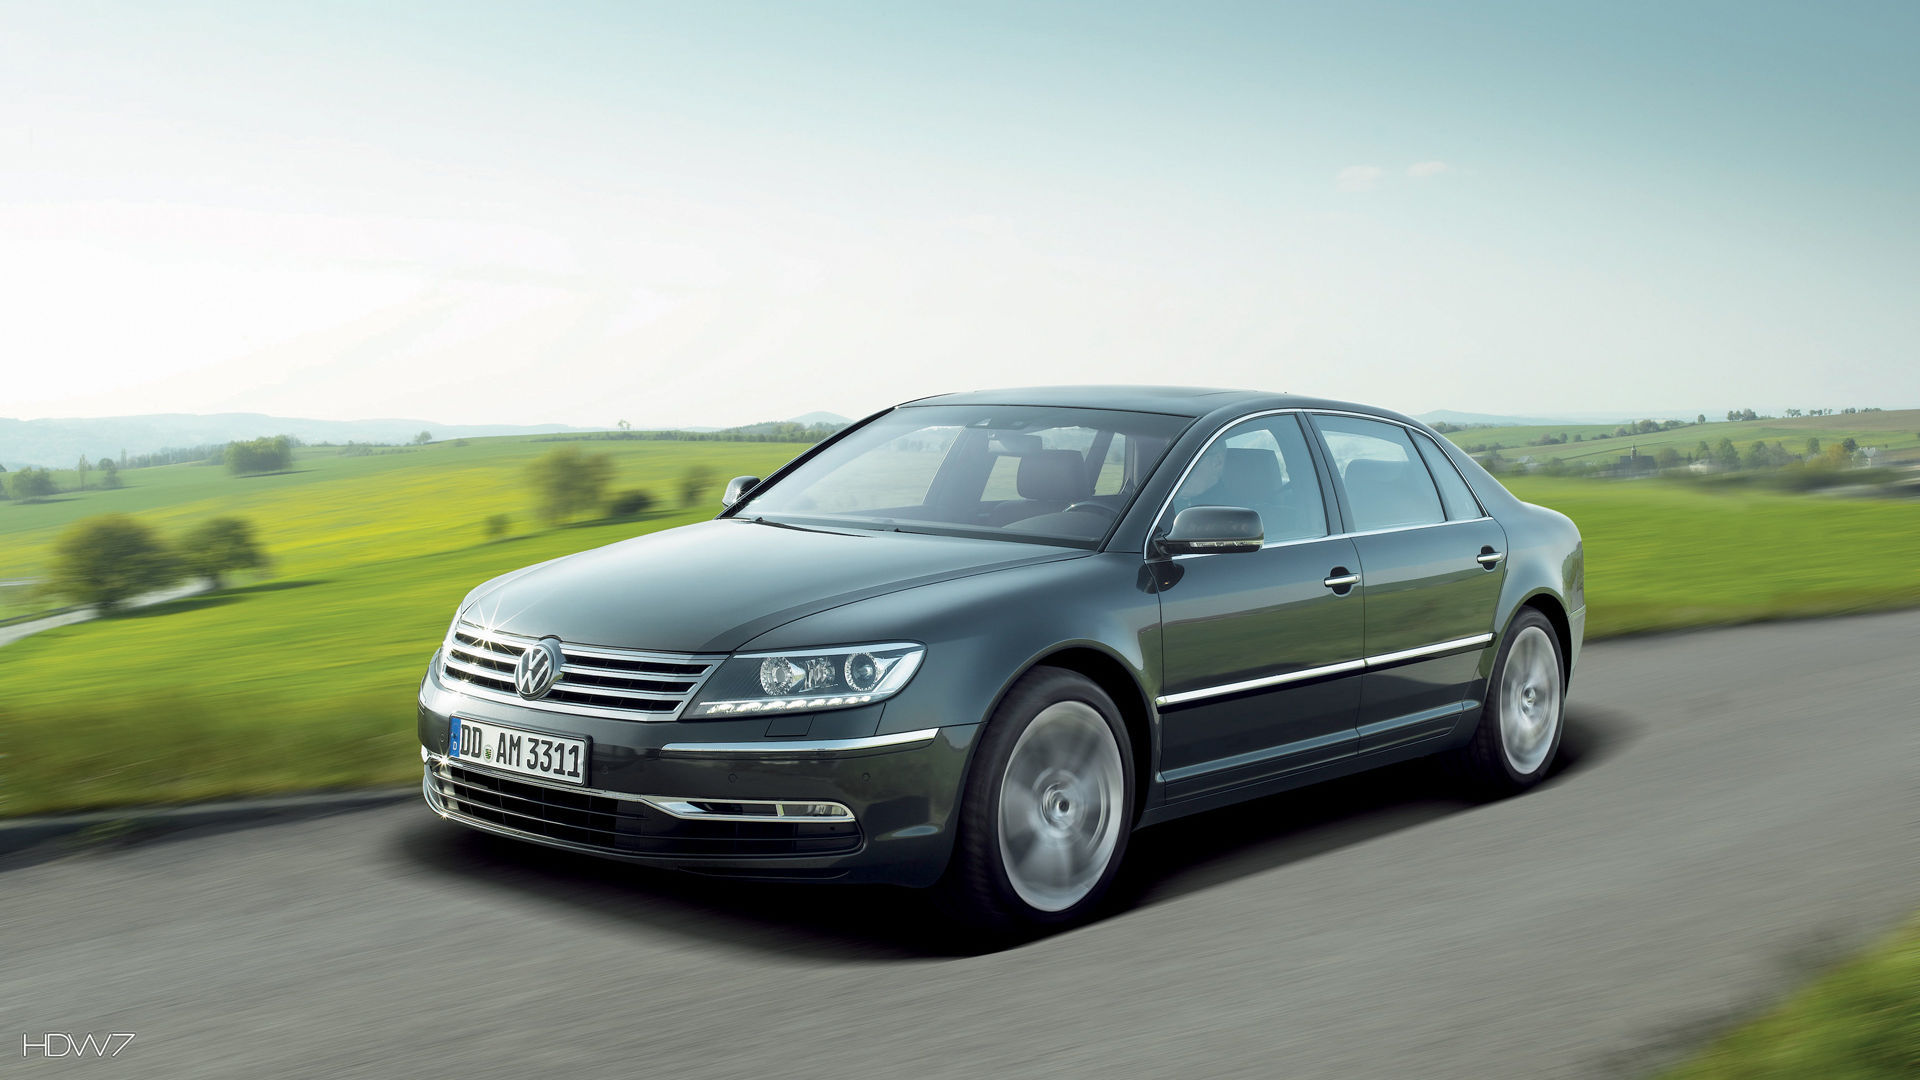 volkswagen phaeton 2011 car hd wallpaper